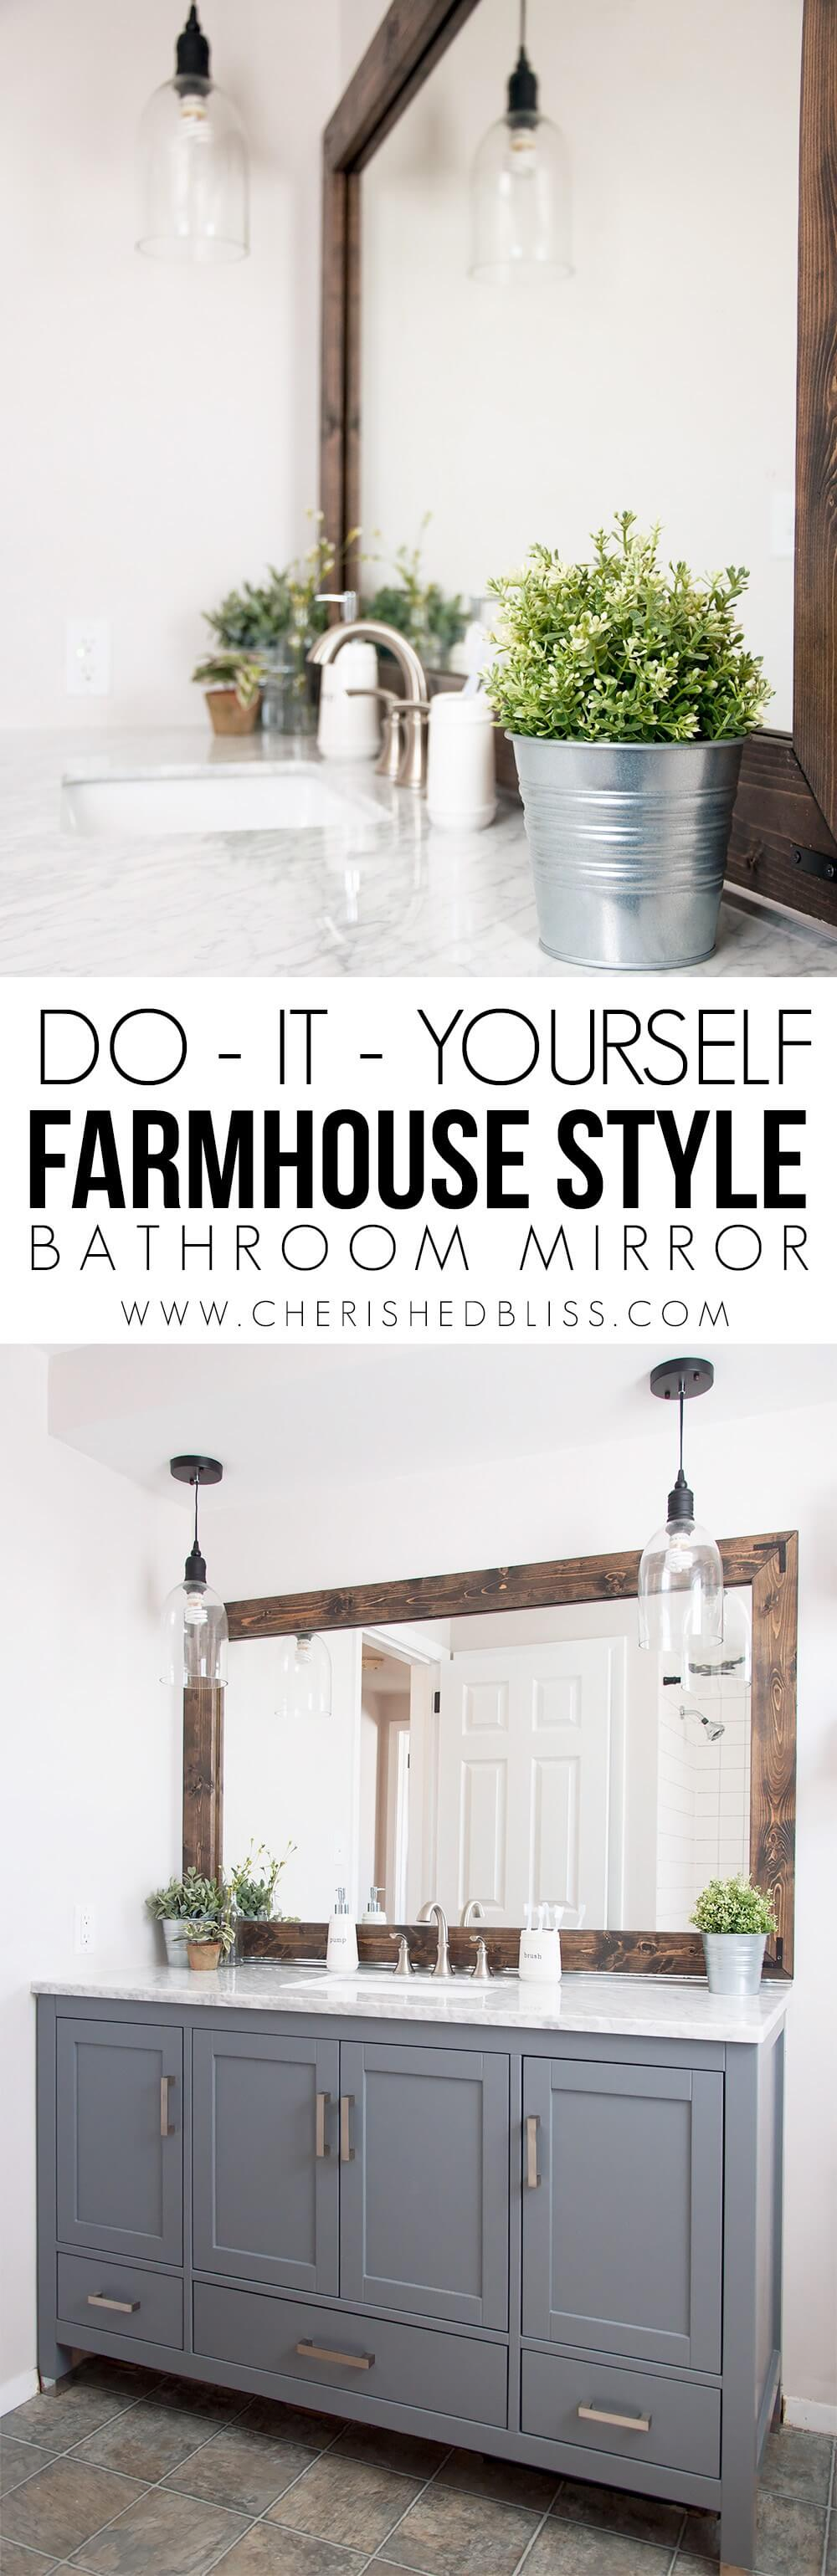 Farmhouse-style Bathroom Mirror